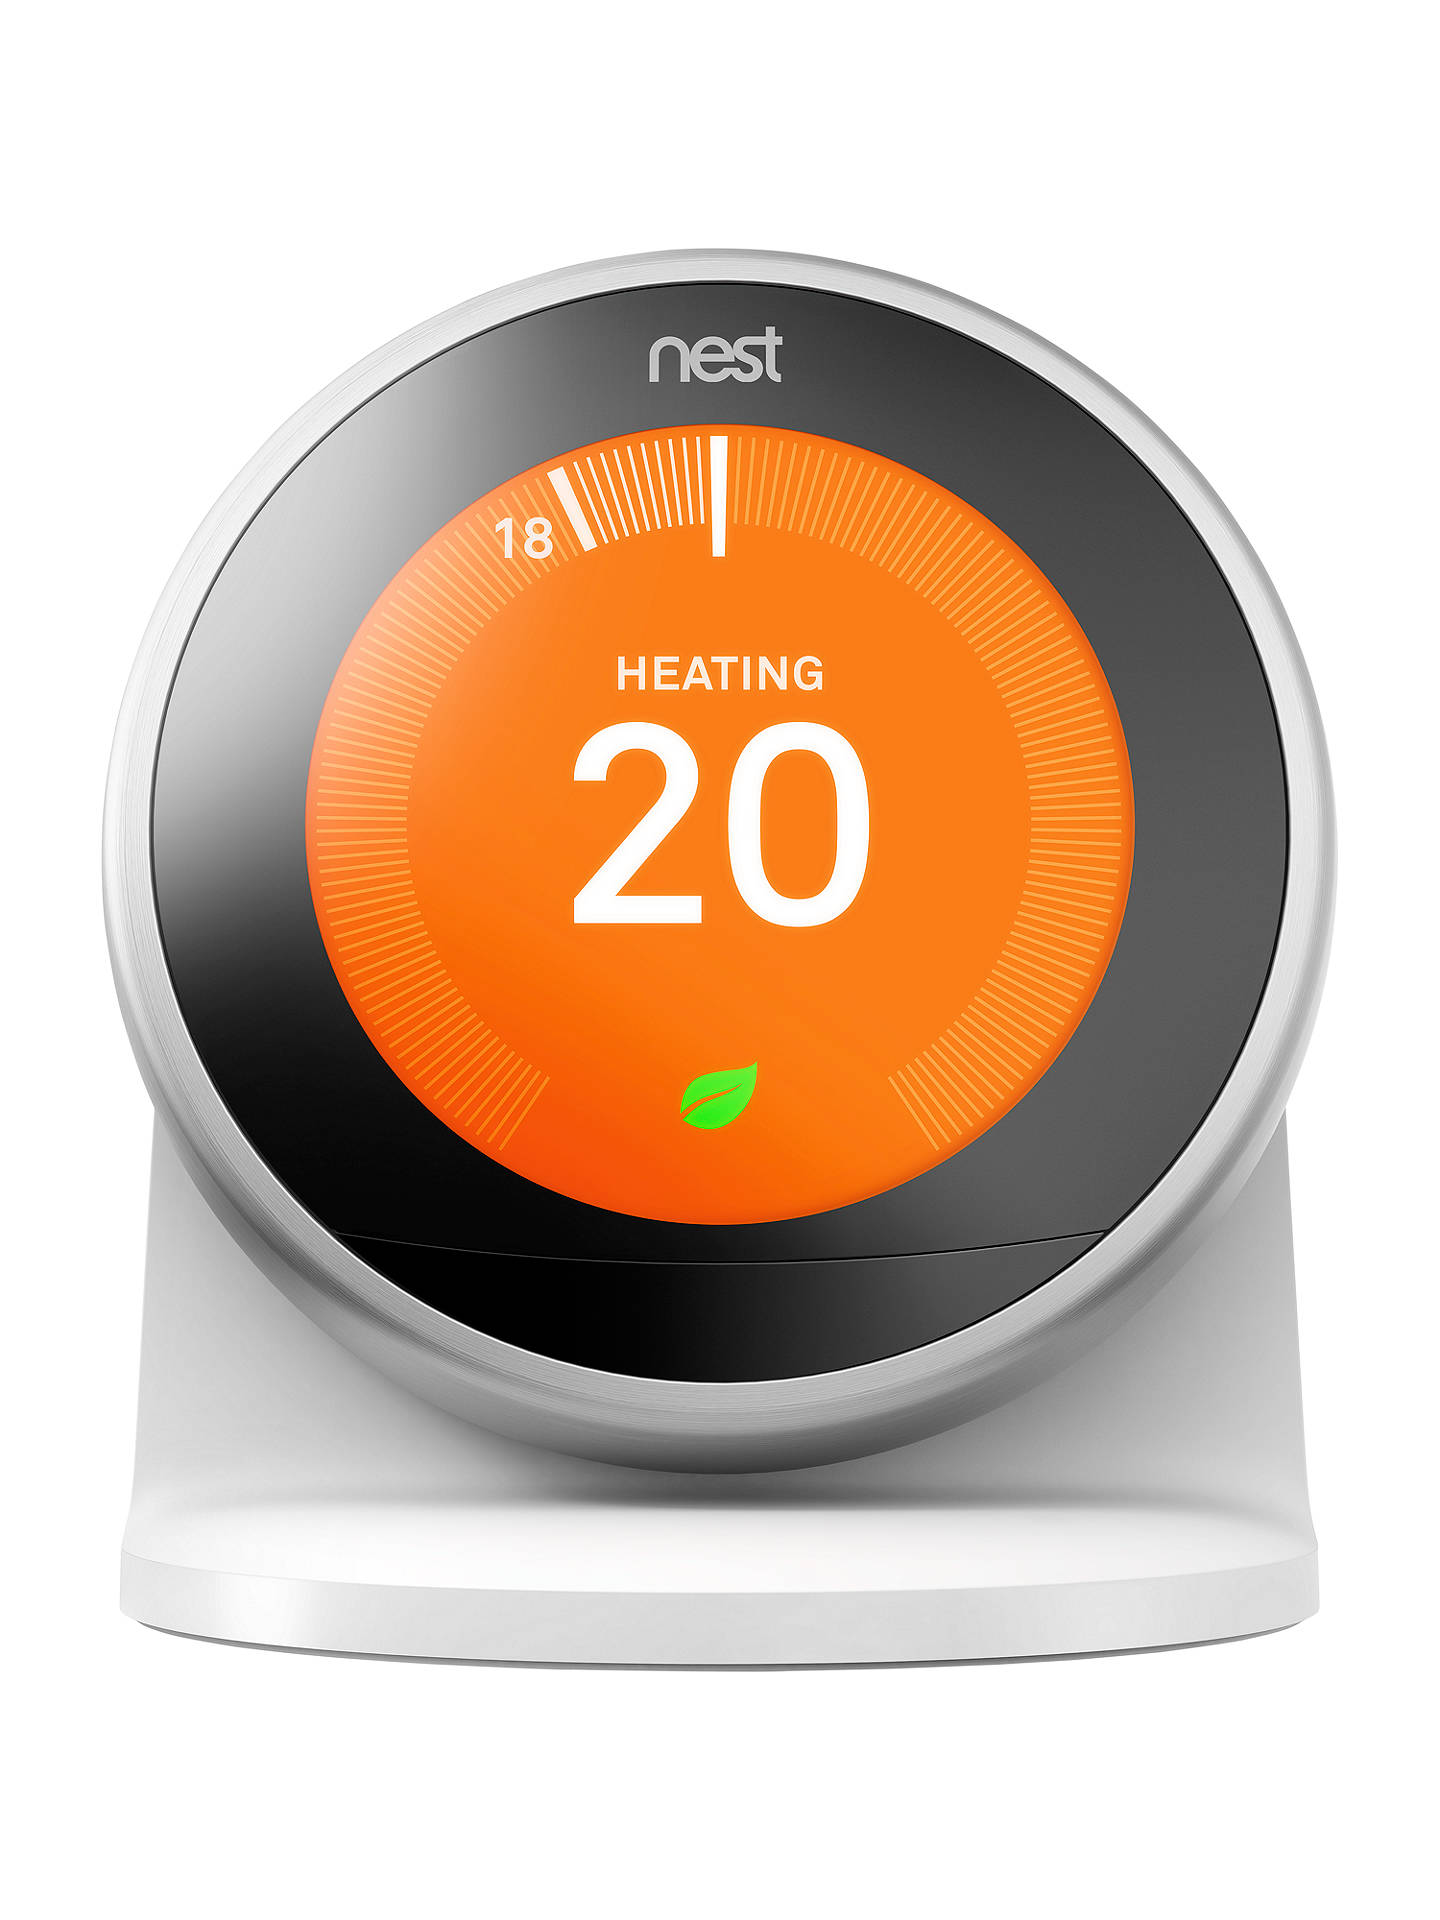 BuyNest Stand for Nest Learning Thermostat, 3rd Generation Online at johnlewis.com